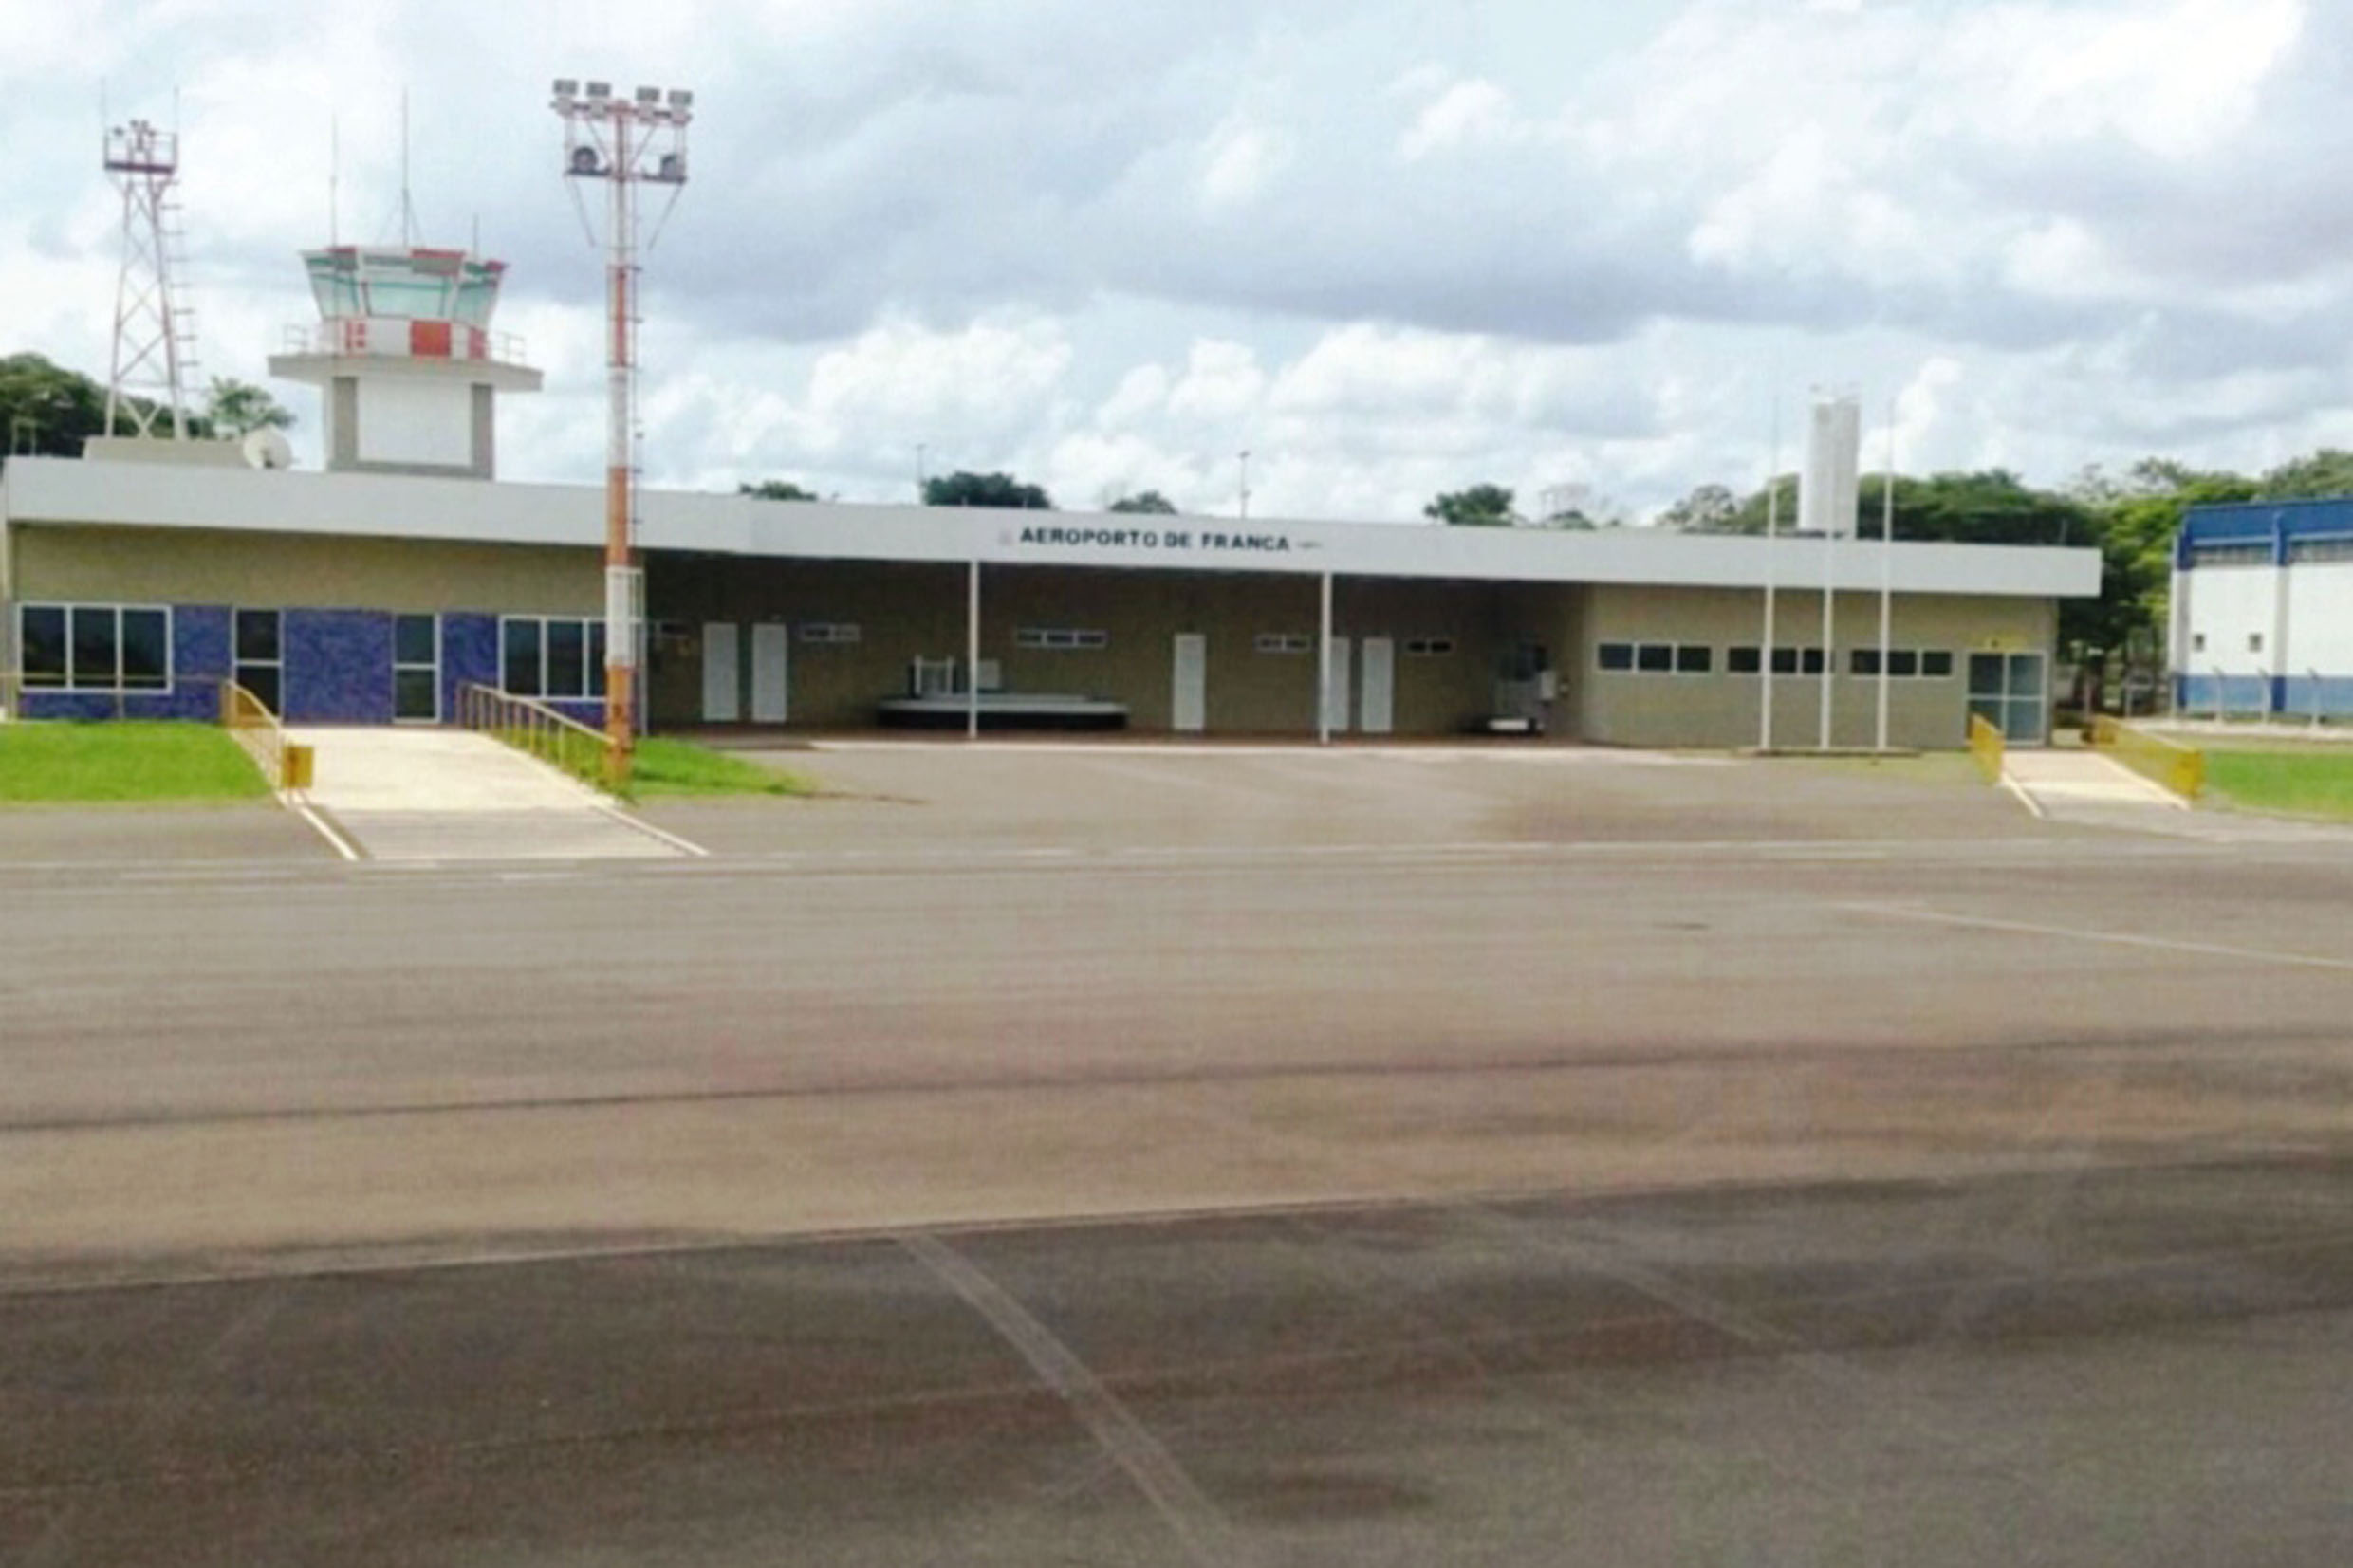 Aeroporto Tenente Lund Presotto<a style='float:right' href='https://www3.al.sp.gov.br/repositorio/noticia/N-03-2019/fg232207.jpg' target=_blank><img src='/_img/material-file-download-white.png' width='14px' alt='Clique para baixar a imagem'></a>